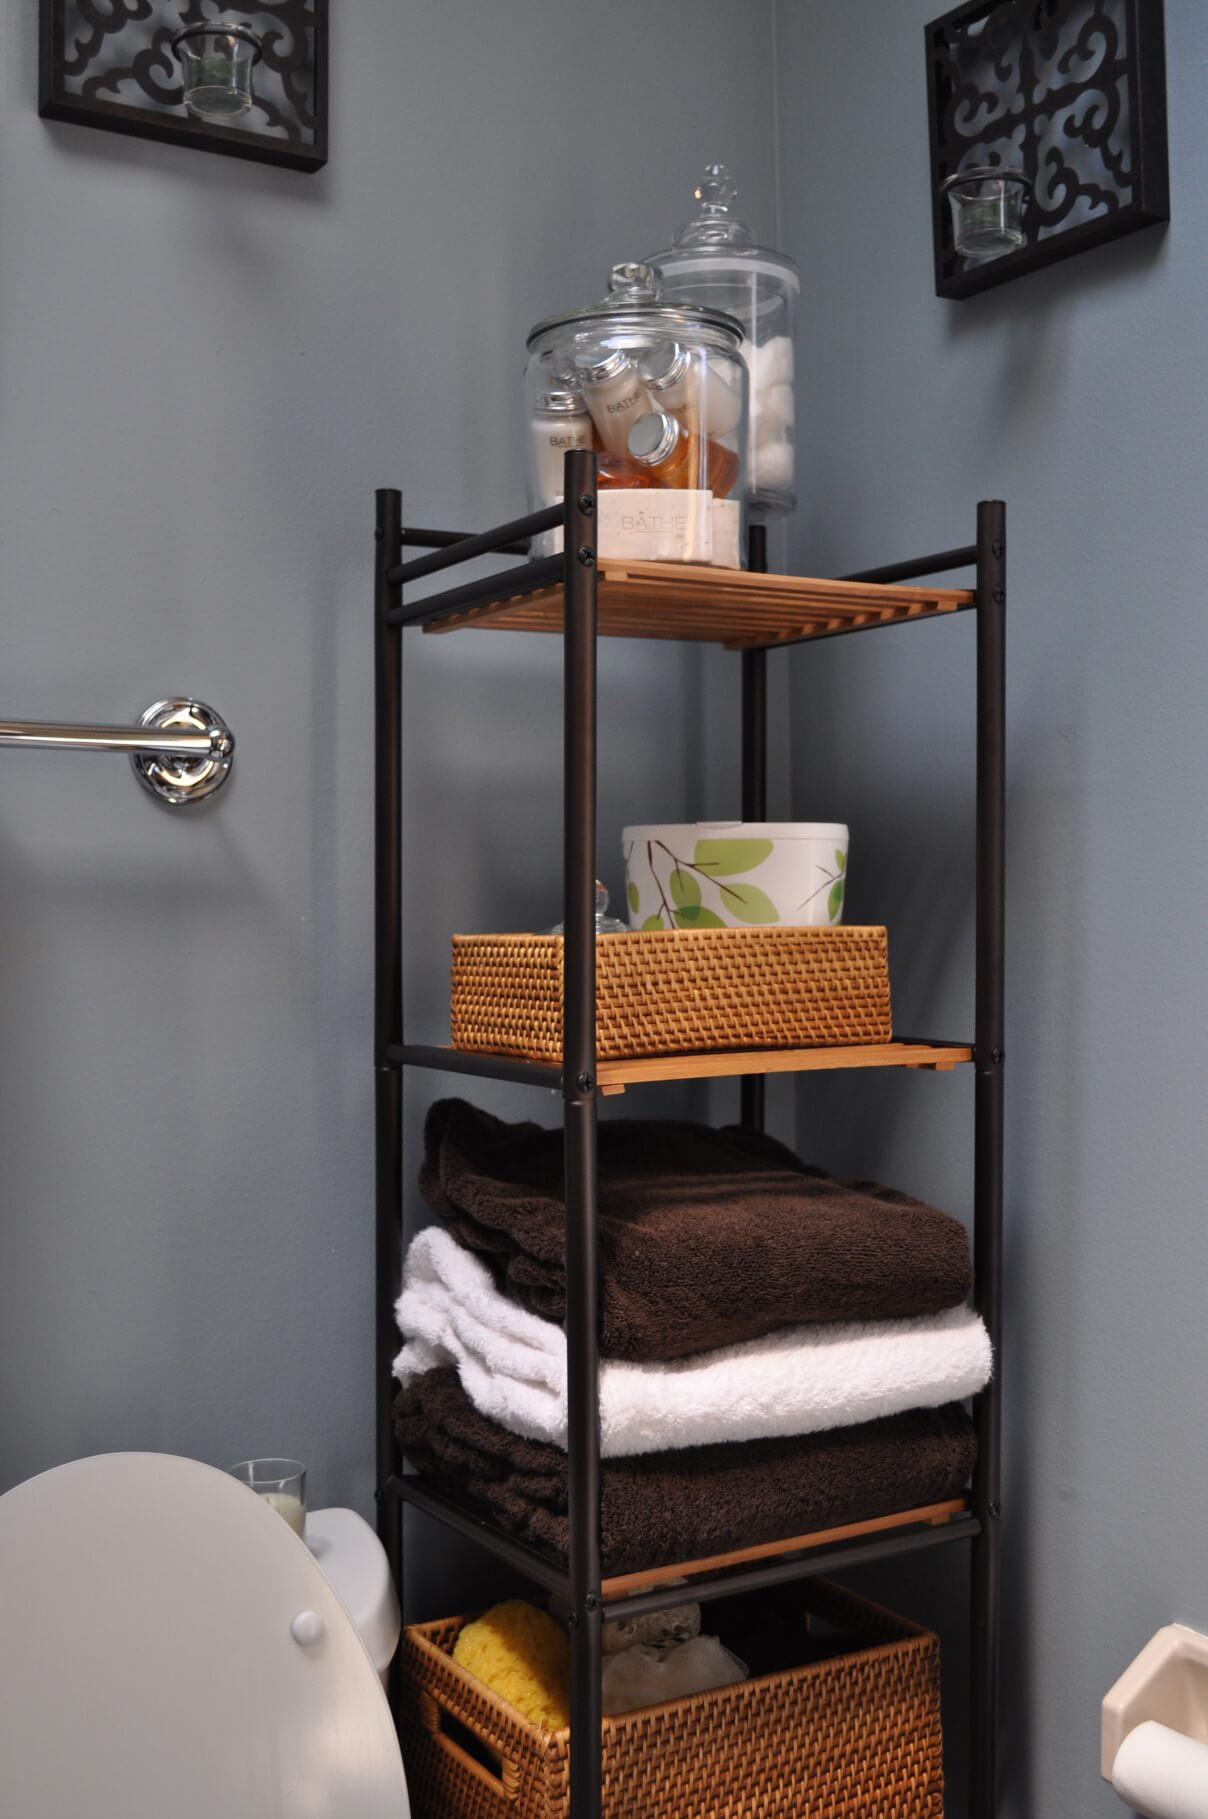 Best Small Bathroom Storage Ideas And Tips For - Bathroom shelving ideas for towels for small bathroom ideas